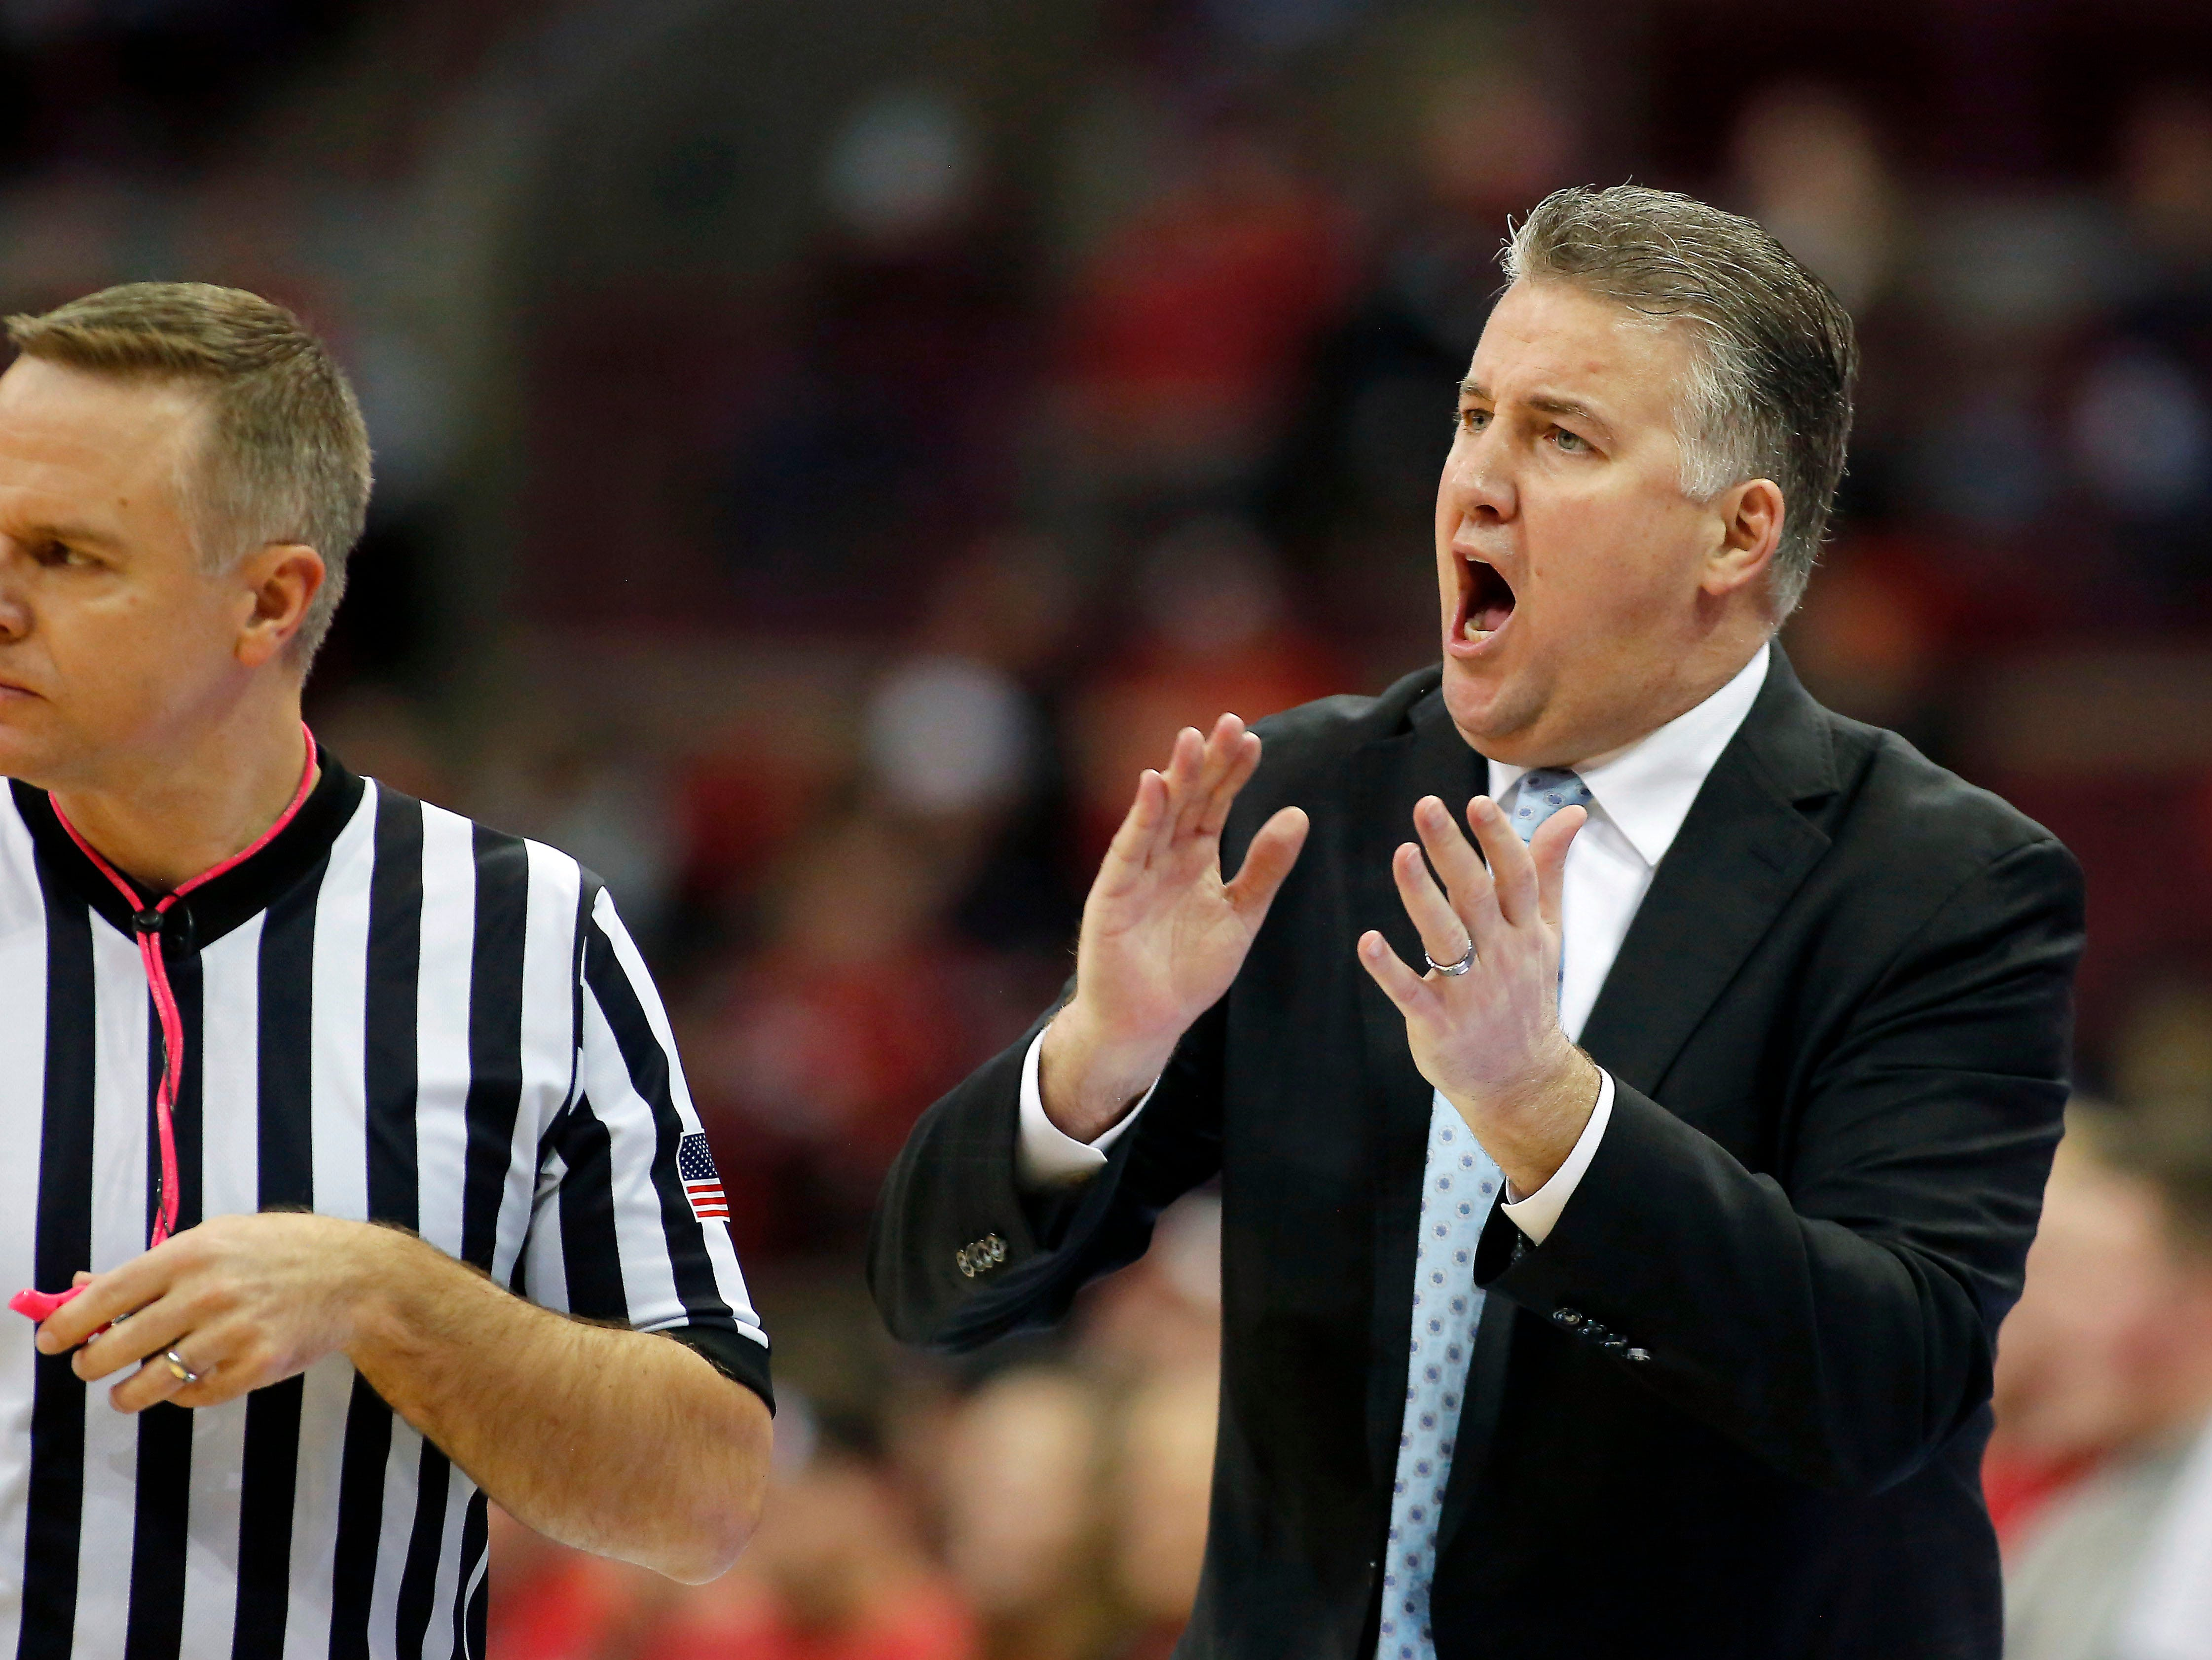 Purdue coach Matt Painter during the first half against Ohio State at Value City Arena.